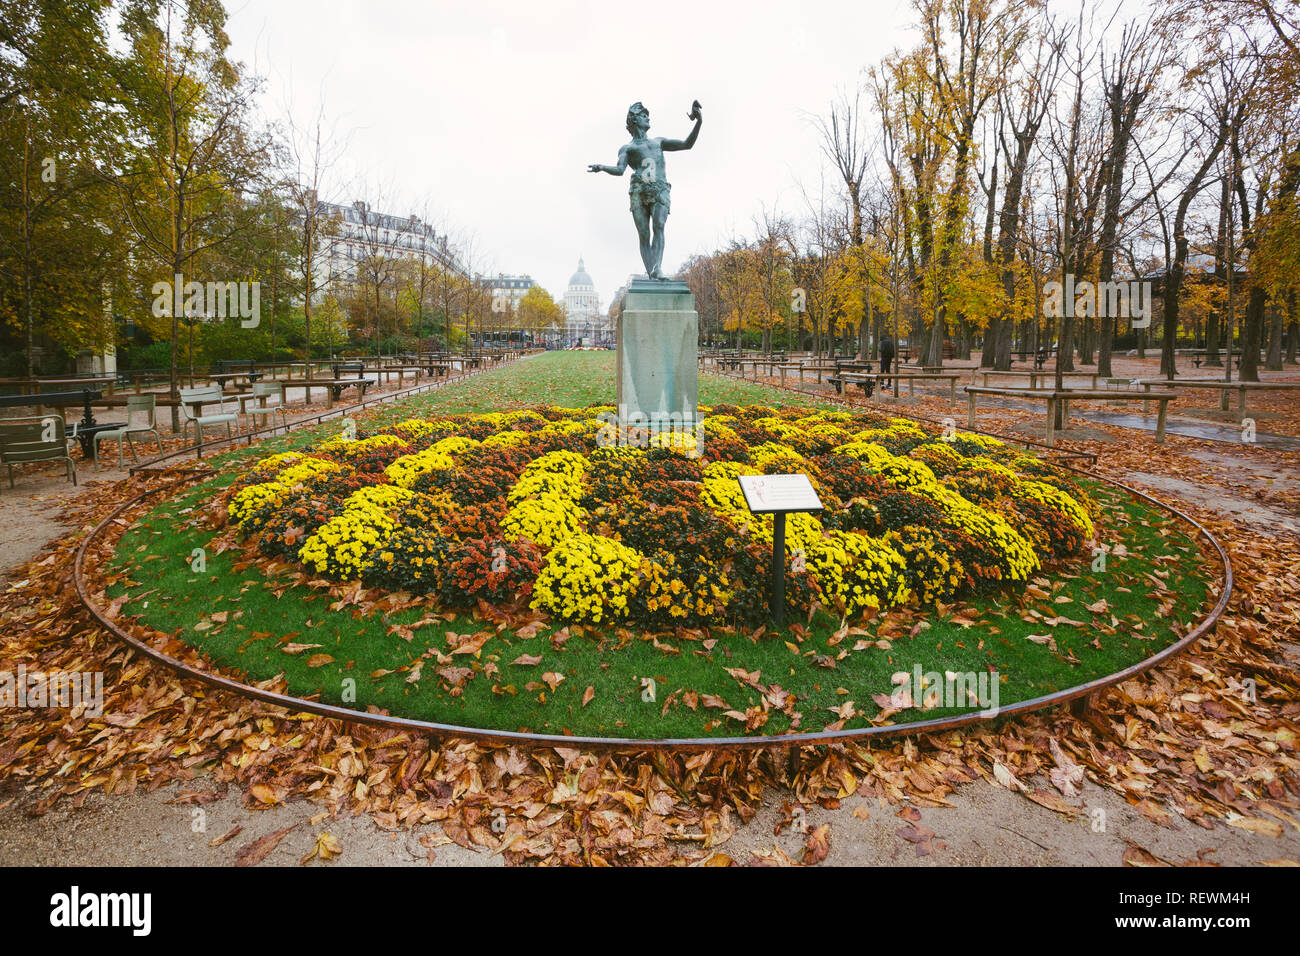 Paris (France) - L'Acteur Grec statue by Baron Bourgeois inside the Luxembourg Gardens Stock Photo